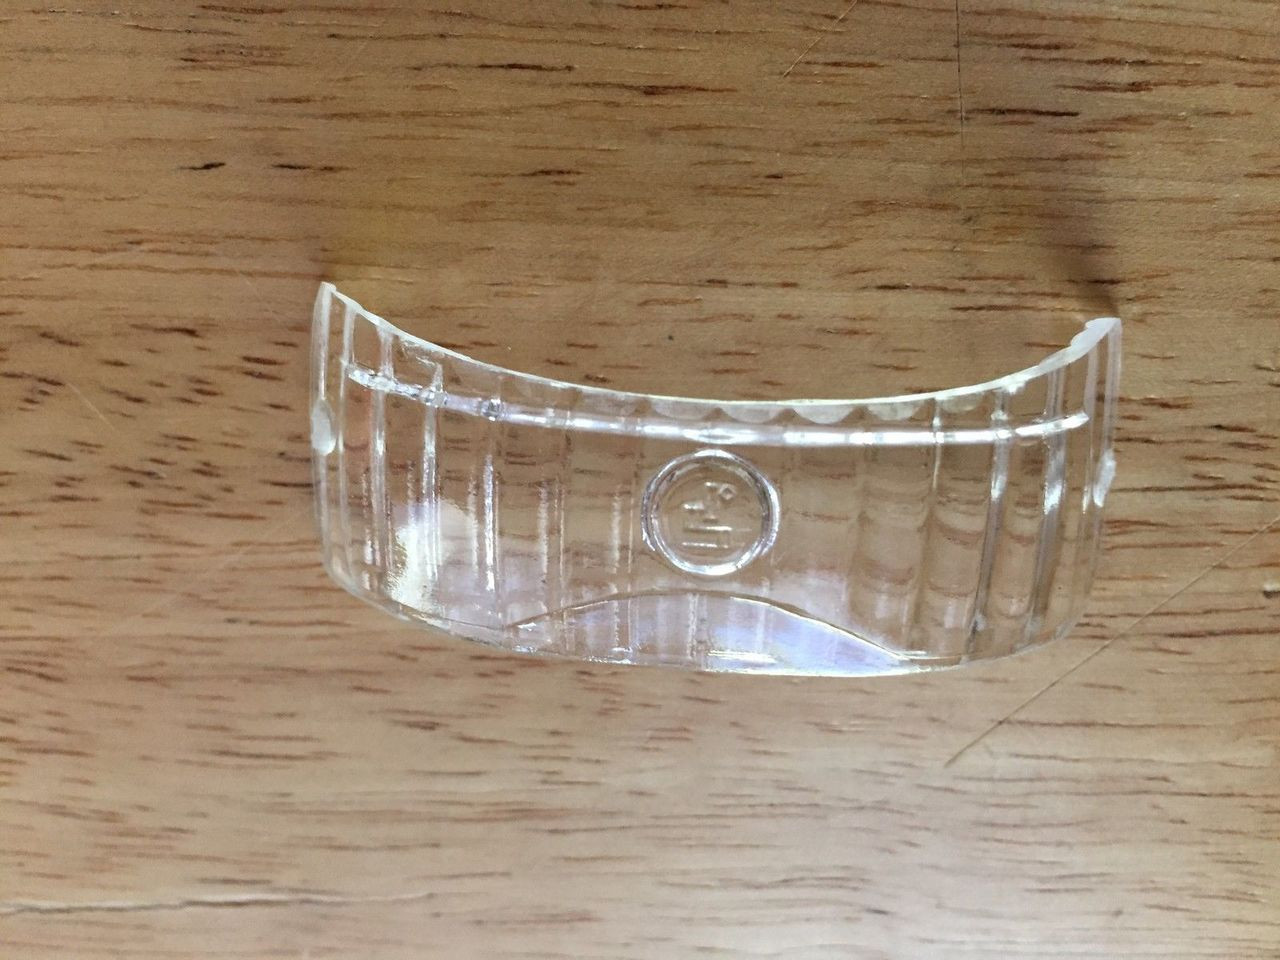 VINTAGE BMW CLEAR LICENSE PLATE LENS TO FIT EBER TAIL LIGHT - 63 26 8 099 810